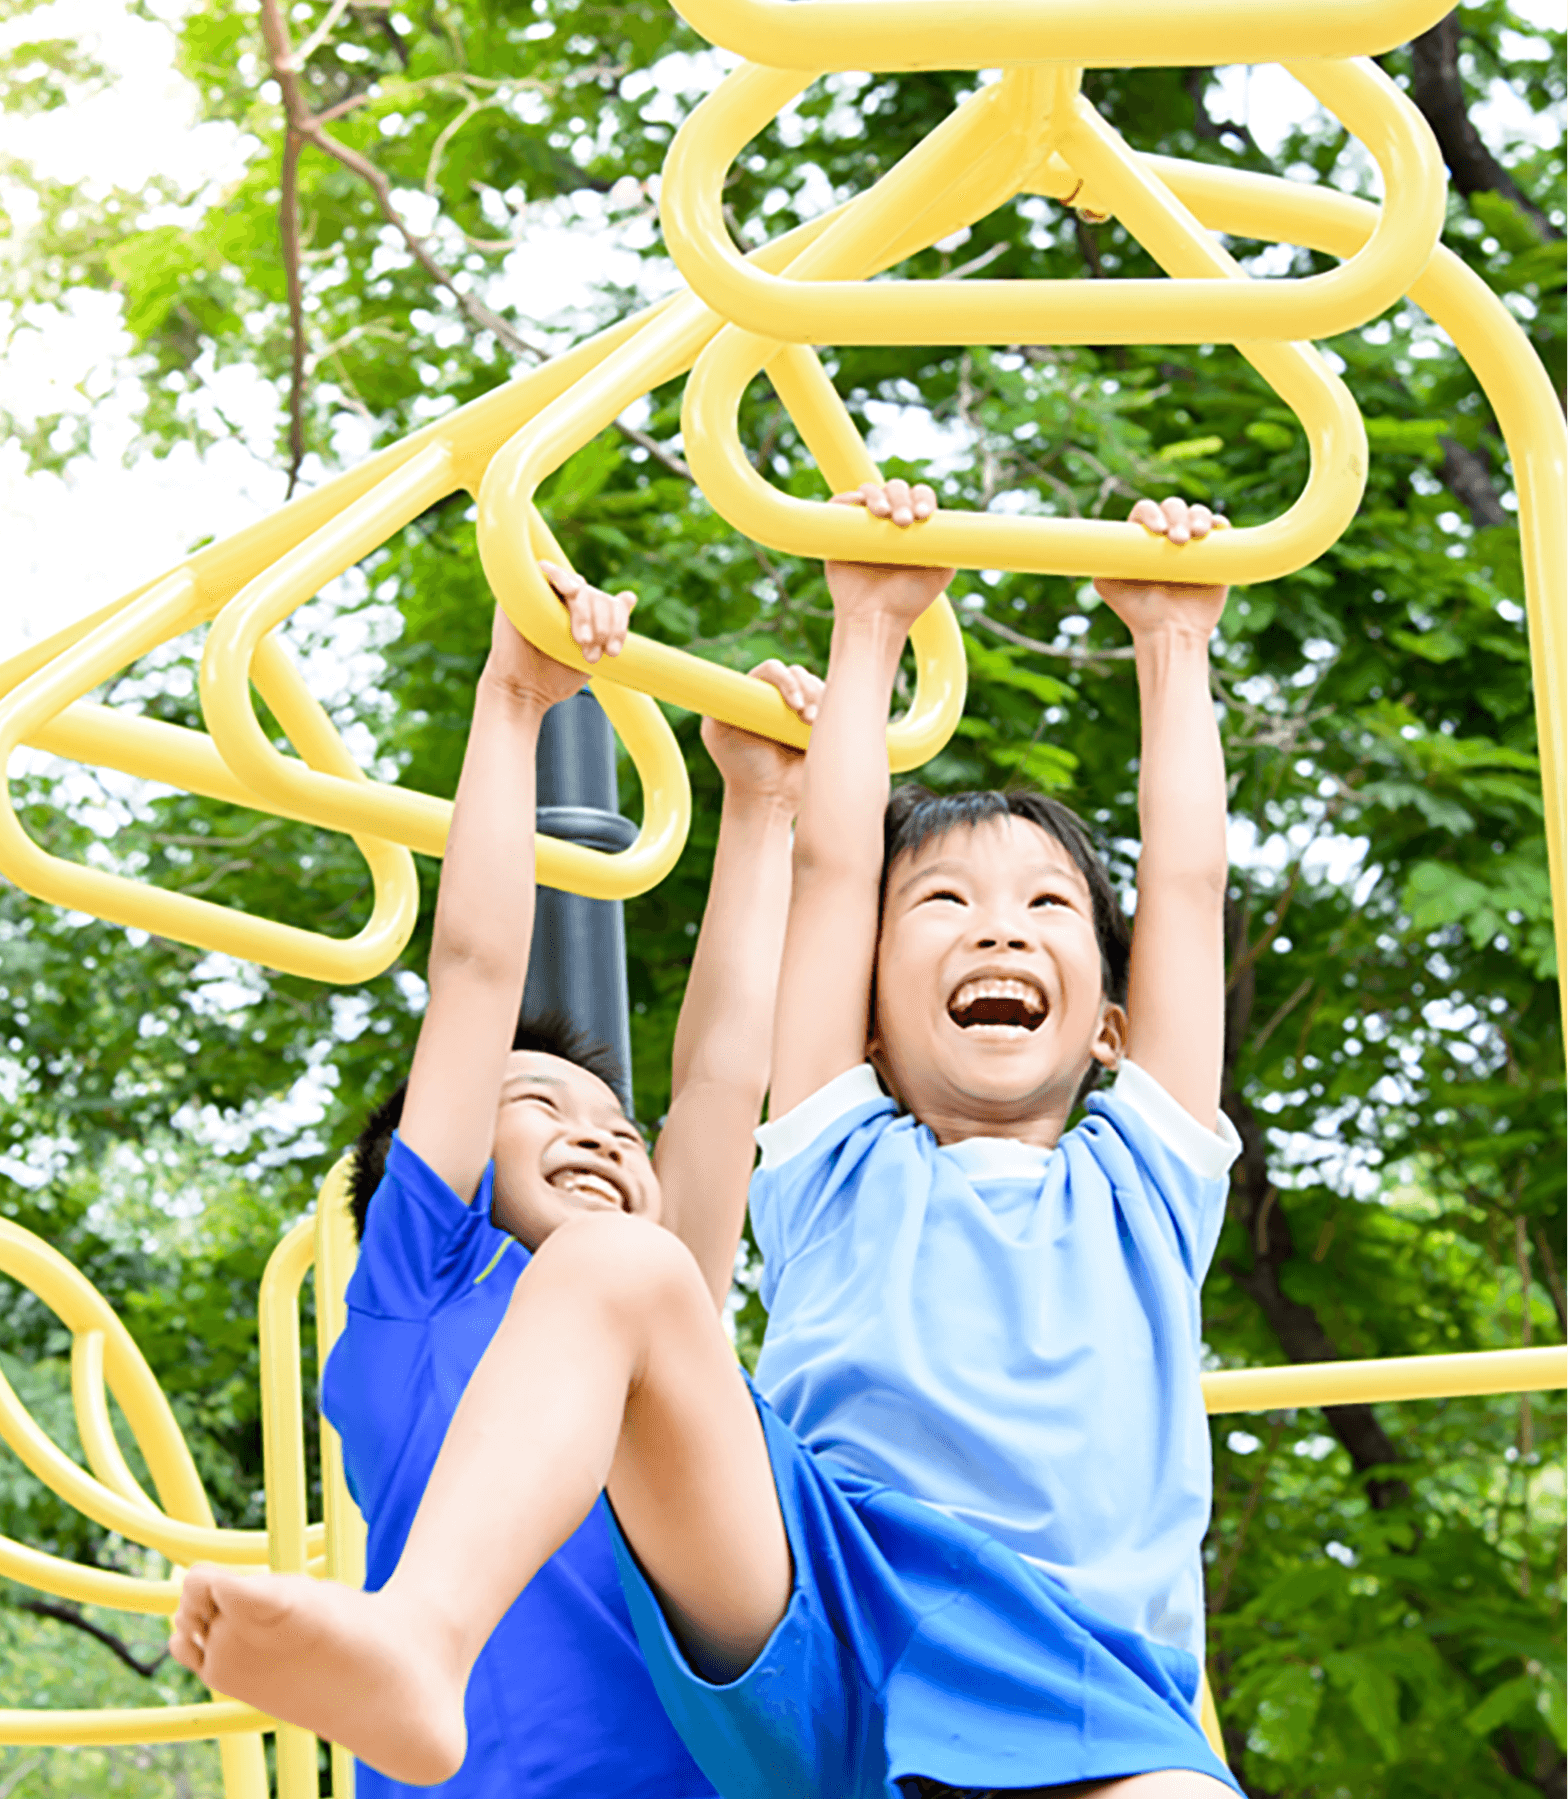 Two young boys climbing on playground equipment